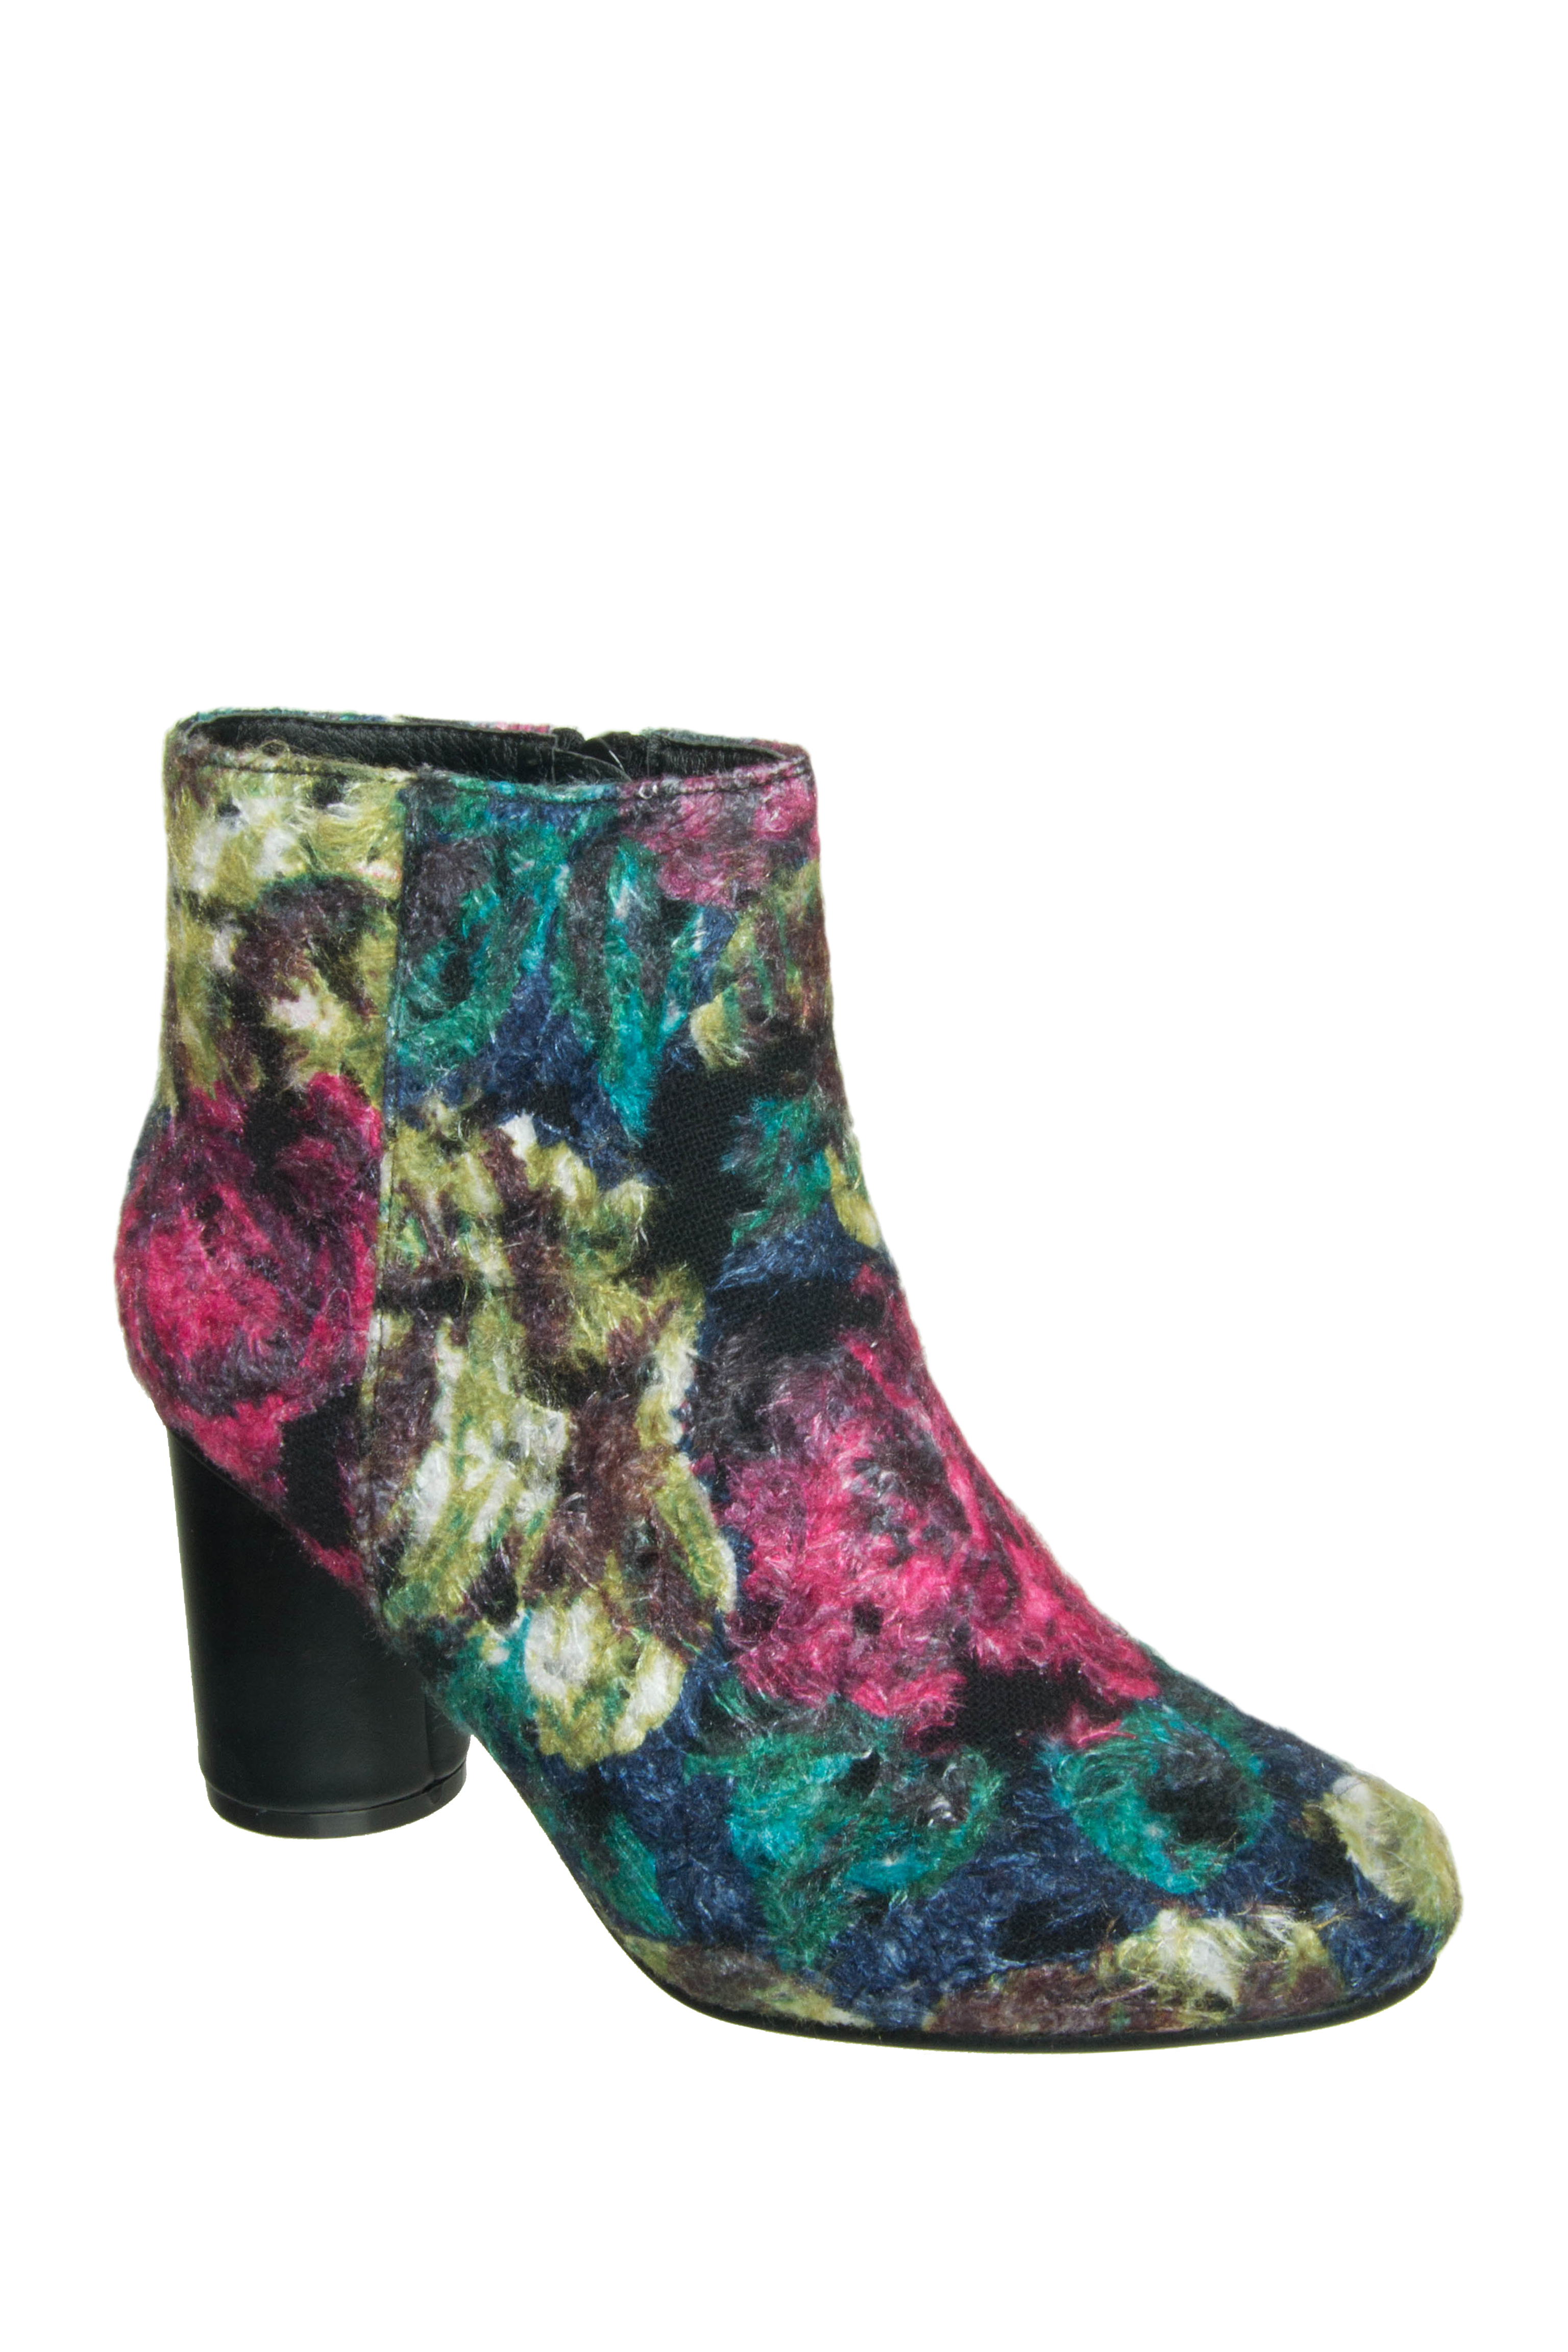 Vanessa Wu Floral Booties - Multicolored